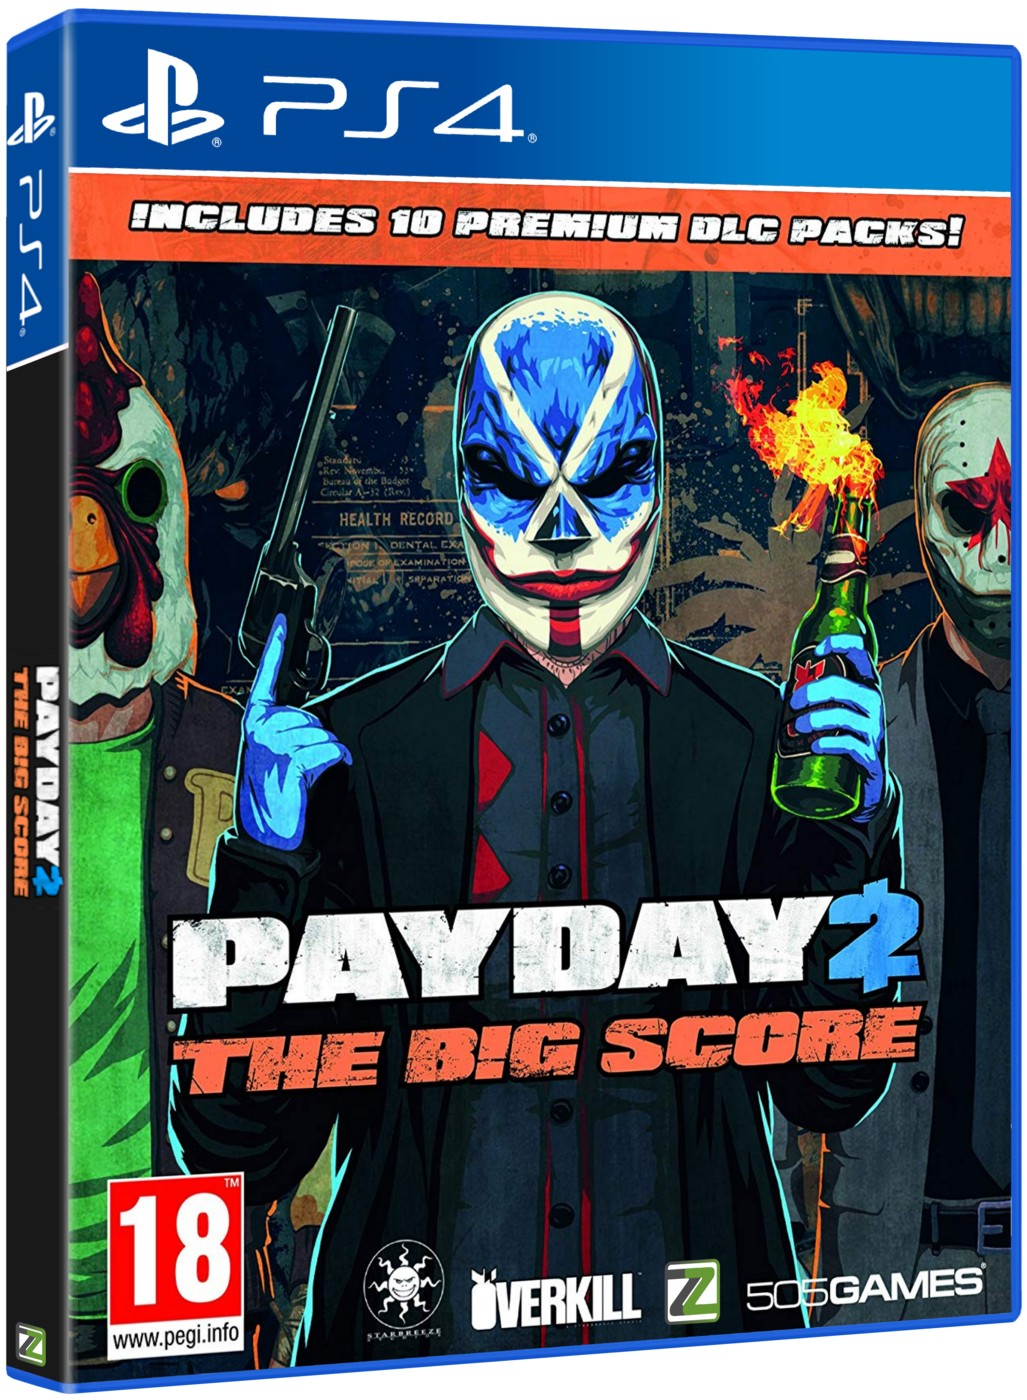 PAYDAY 2 THE BIG SCORE - PS4